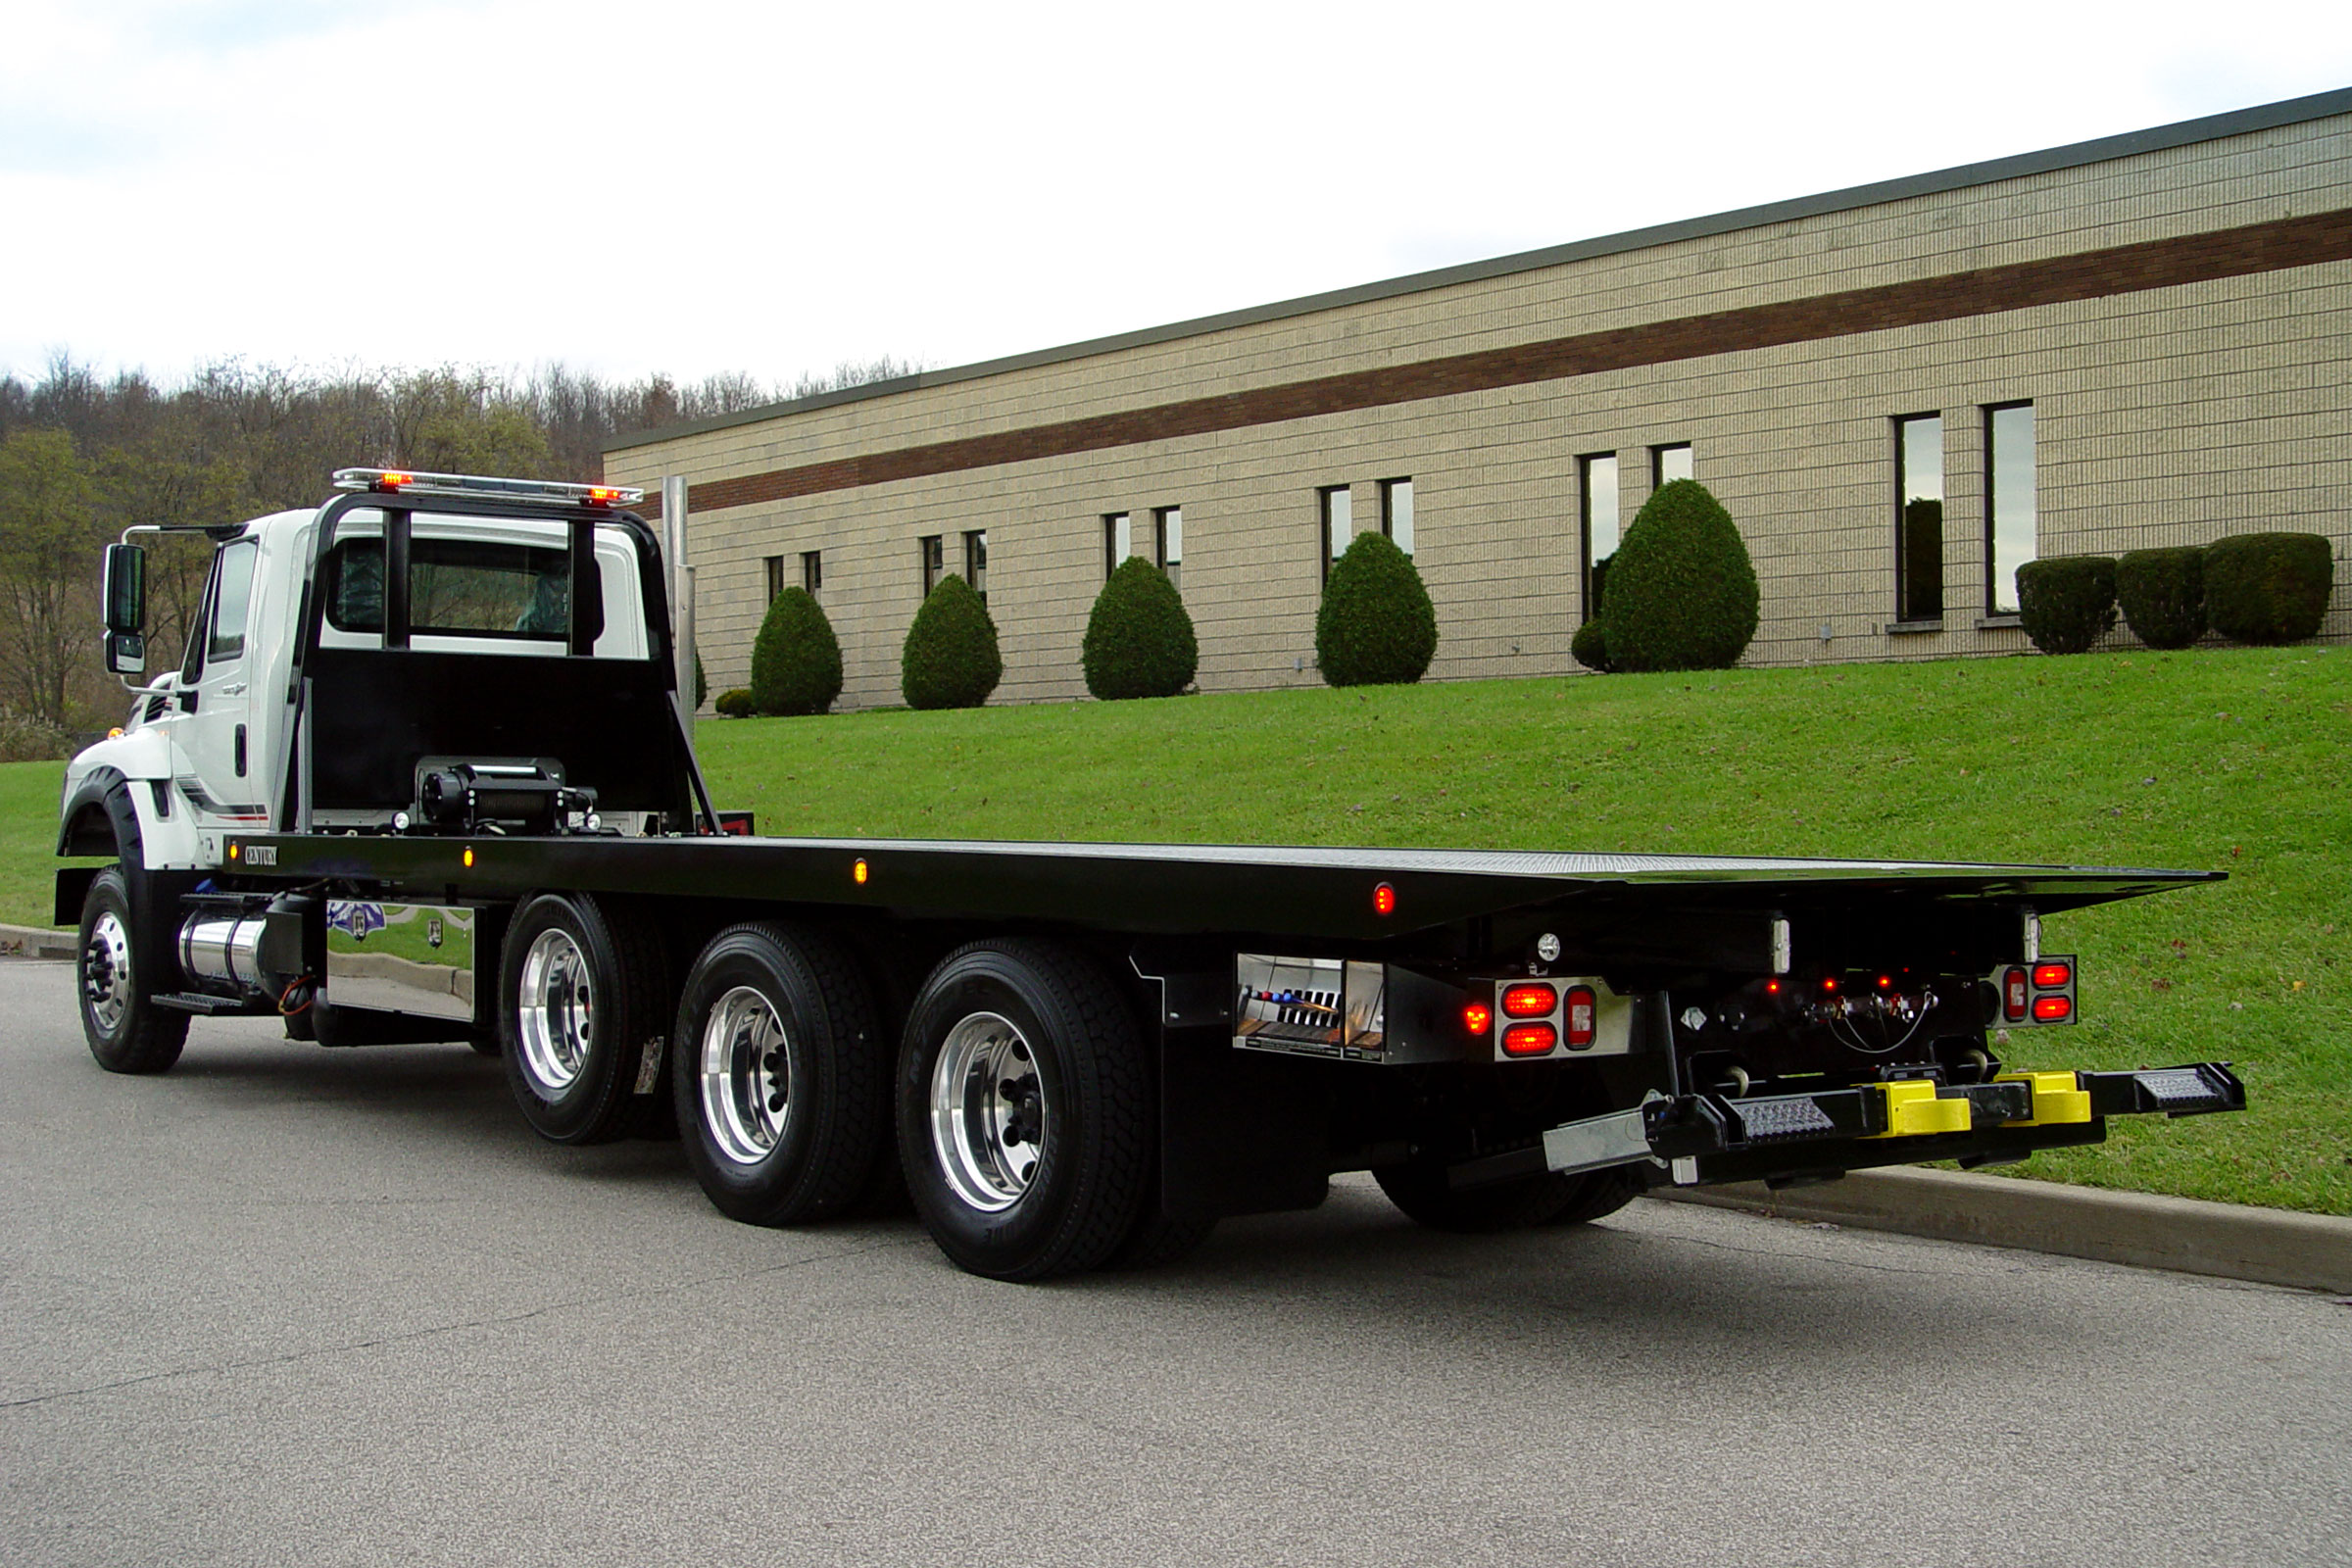 Car Carriers LCG Industrial Vulcan Vulcan 30 & 40 Series LCG™ Car Carrier